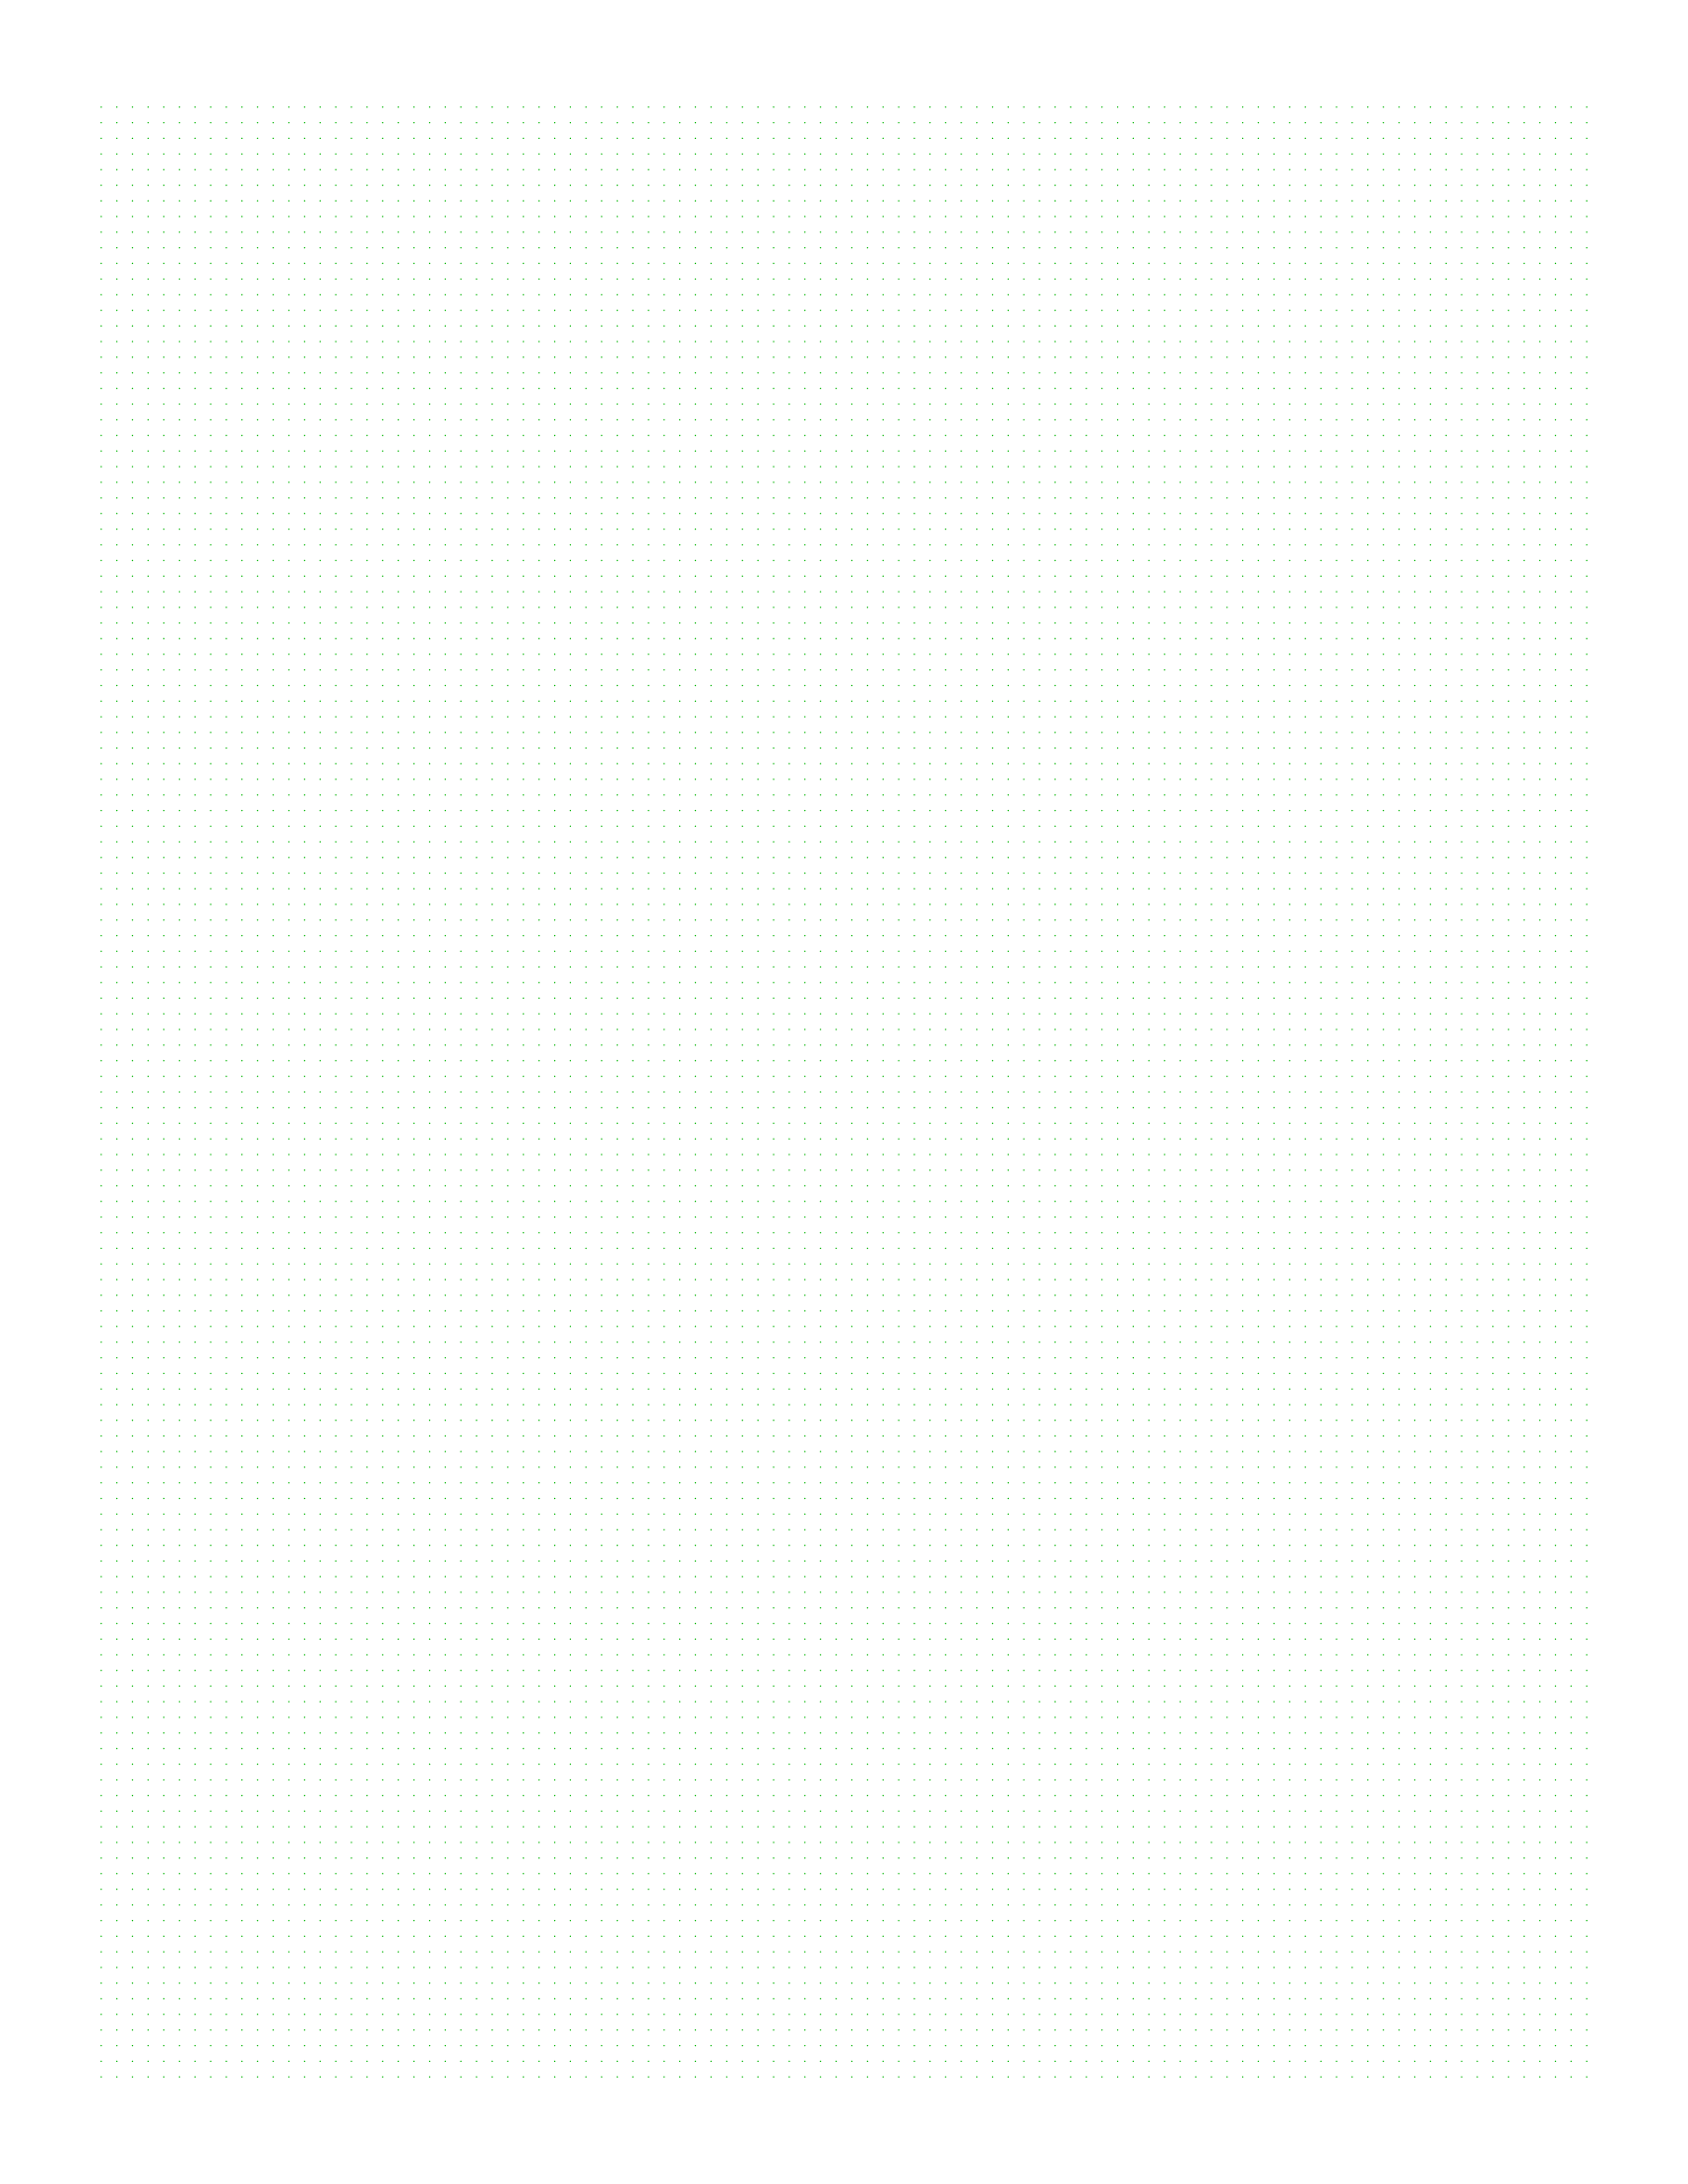 Free Online Graph Paper / Square Dots.